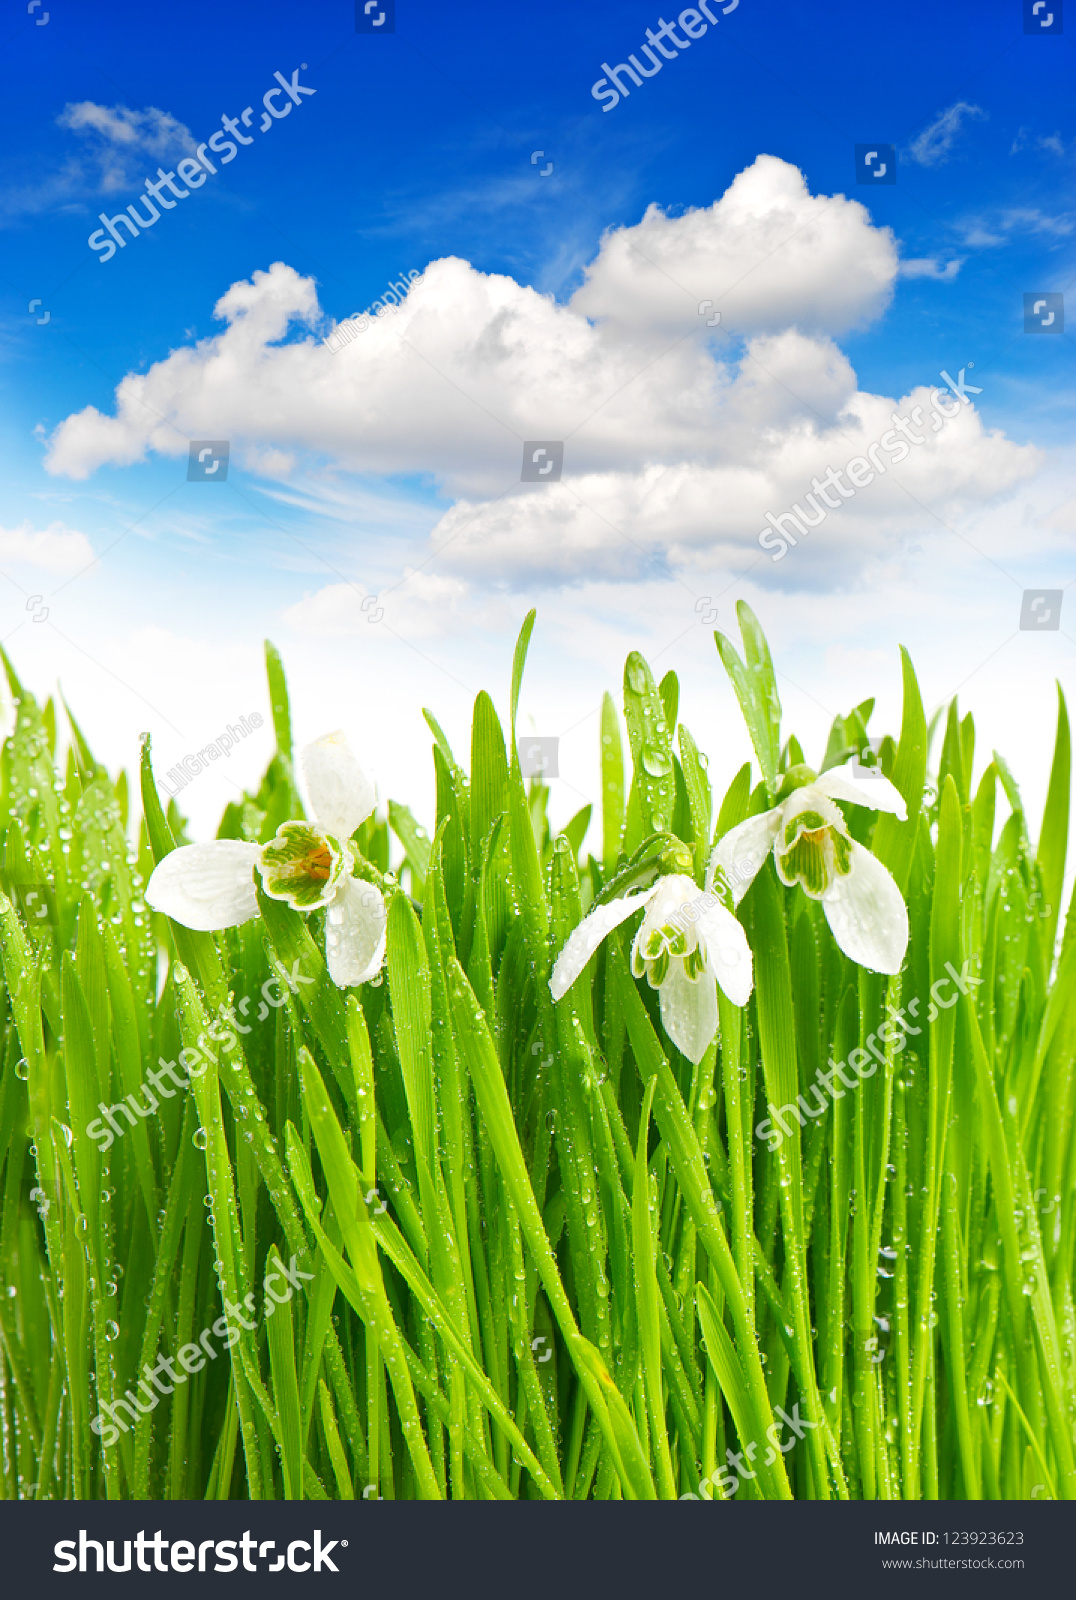 green grass blue sky flowers beautiful green grass blue sky flowers download flowers